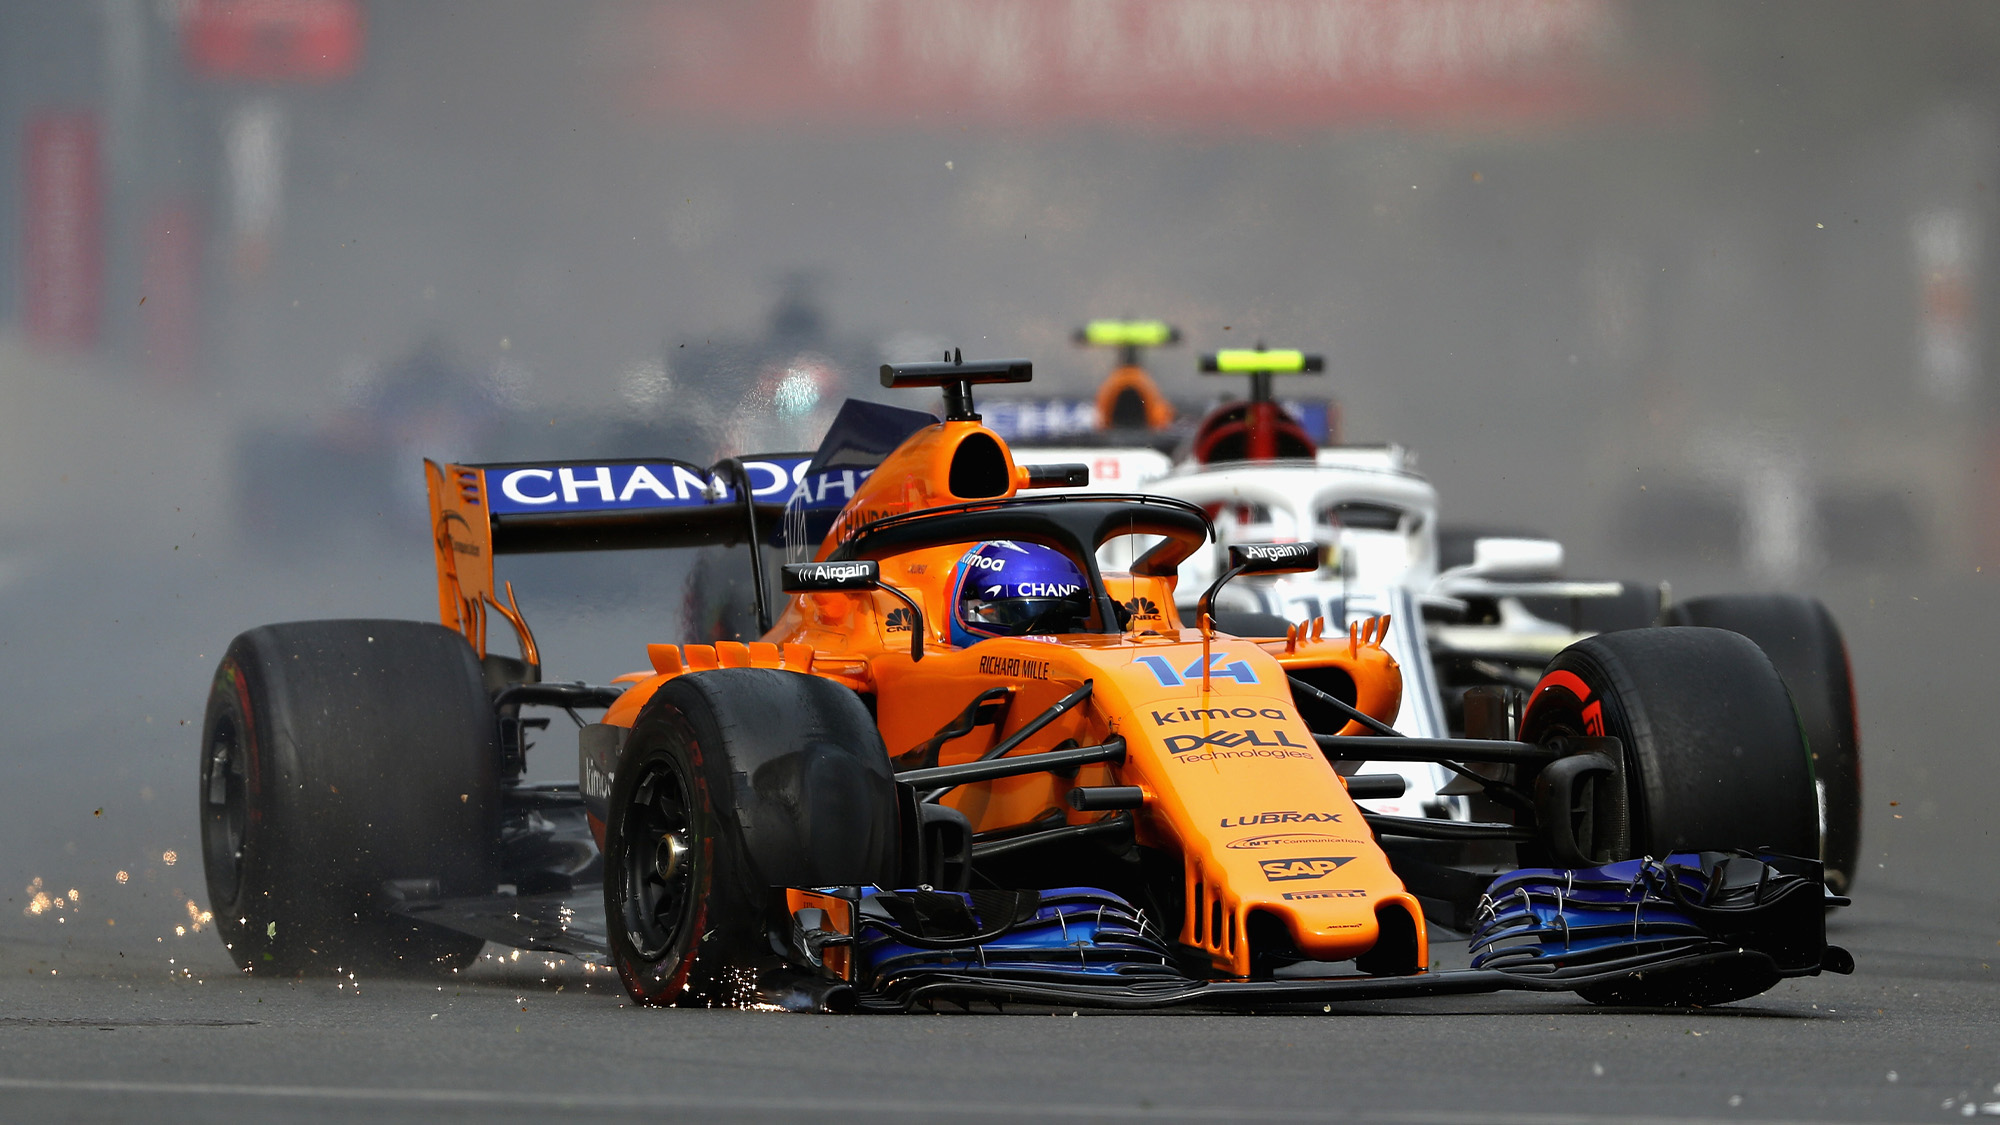 Fernando Alonso drives his punctured McLaren in the 2018 Azerbaijan Grand Prix in Baku